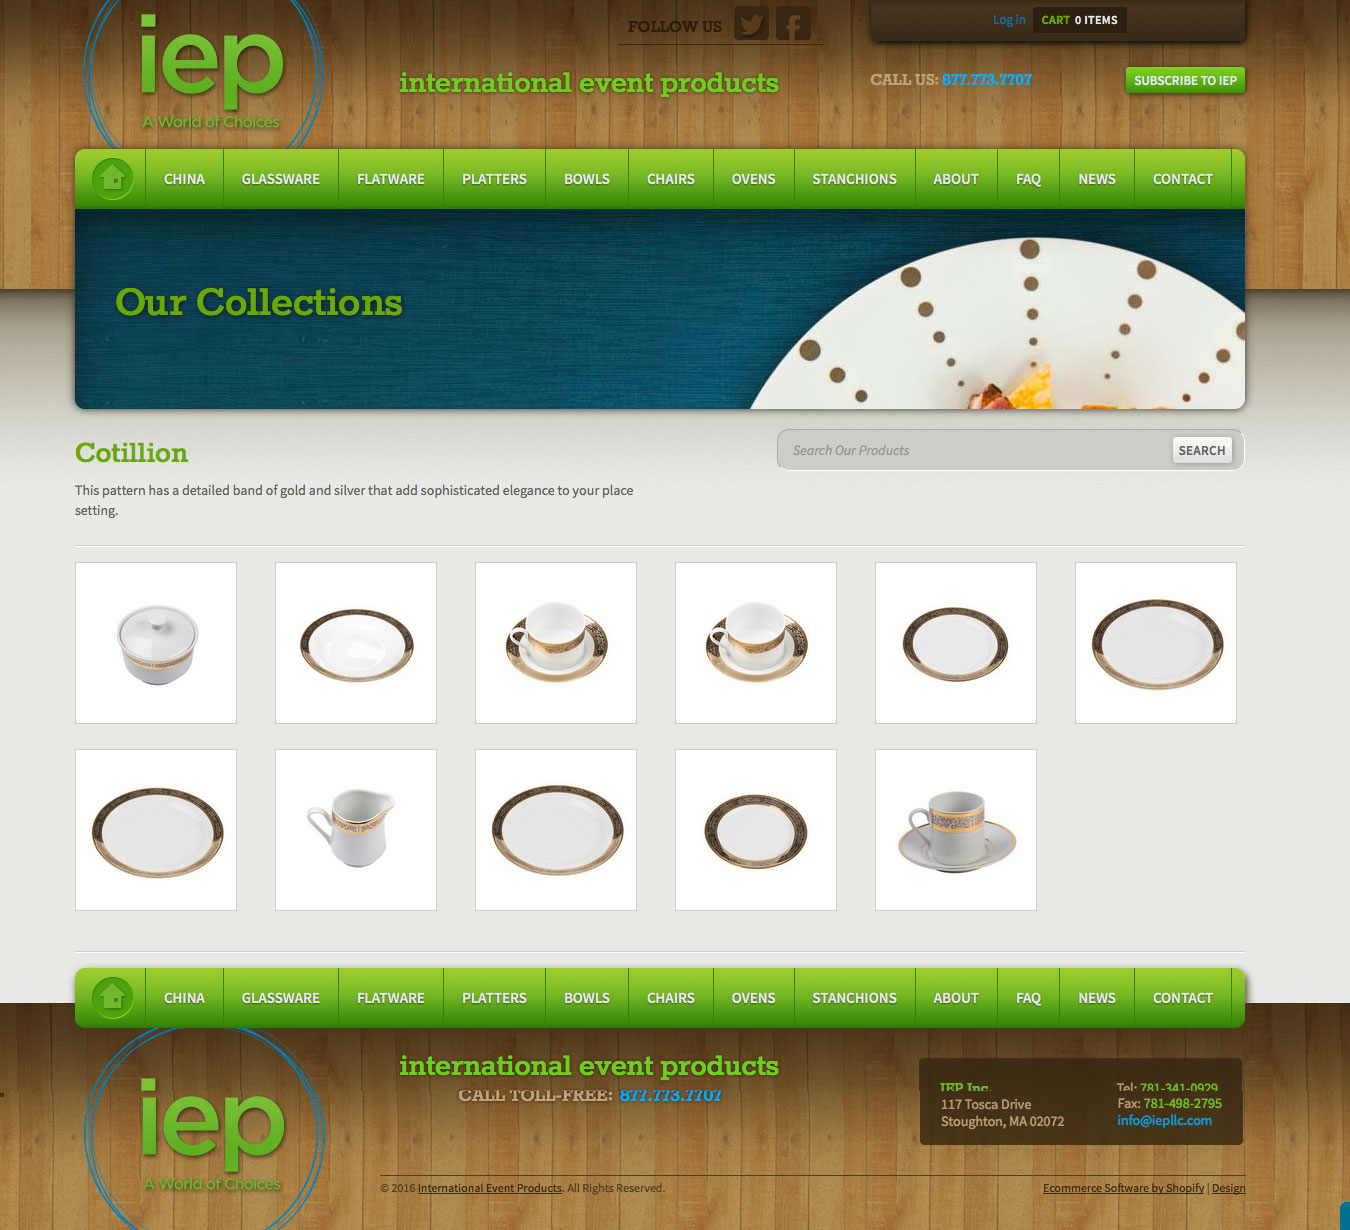 IEP Website Products Page